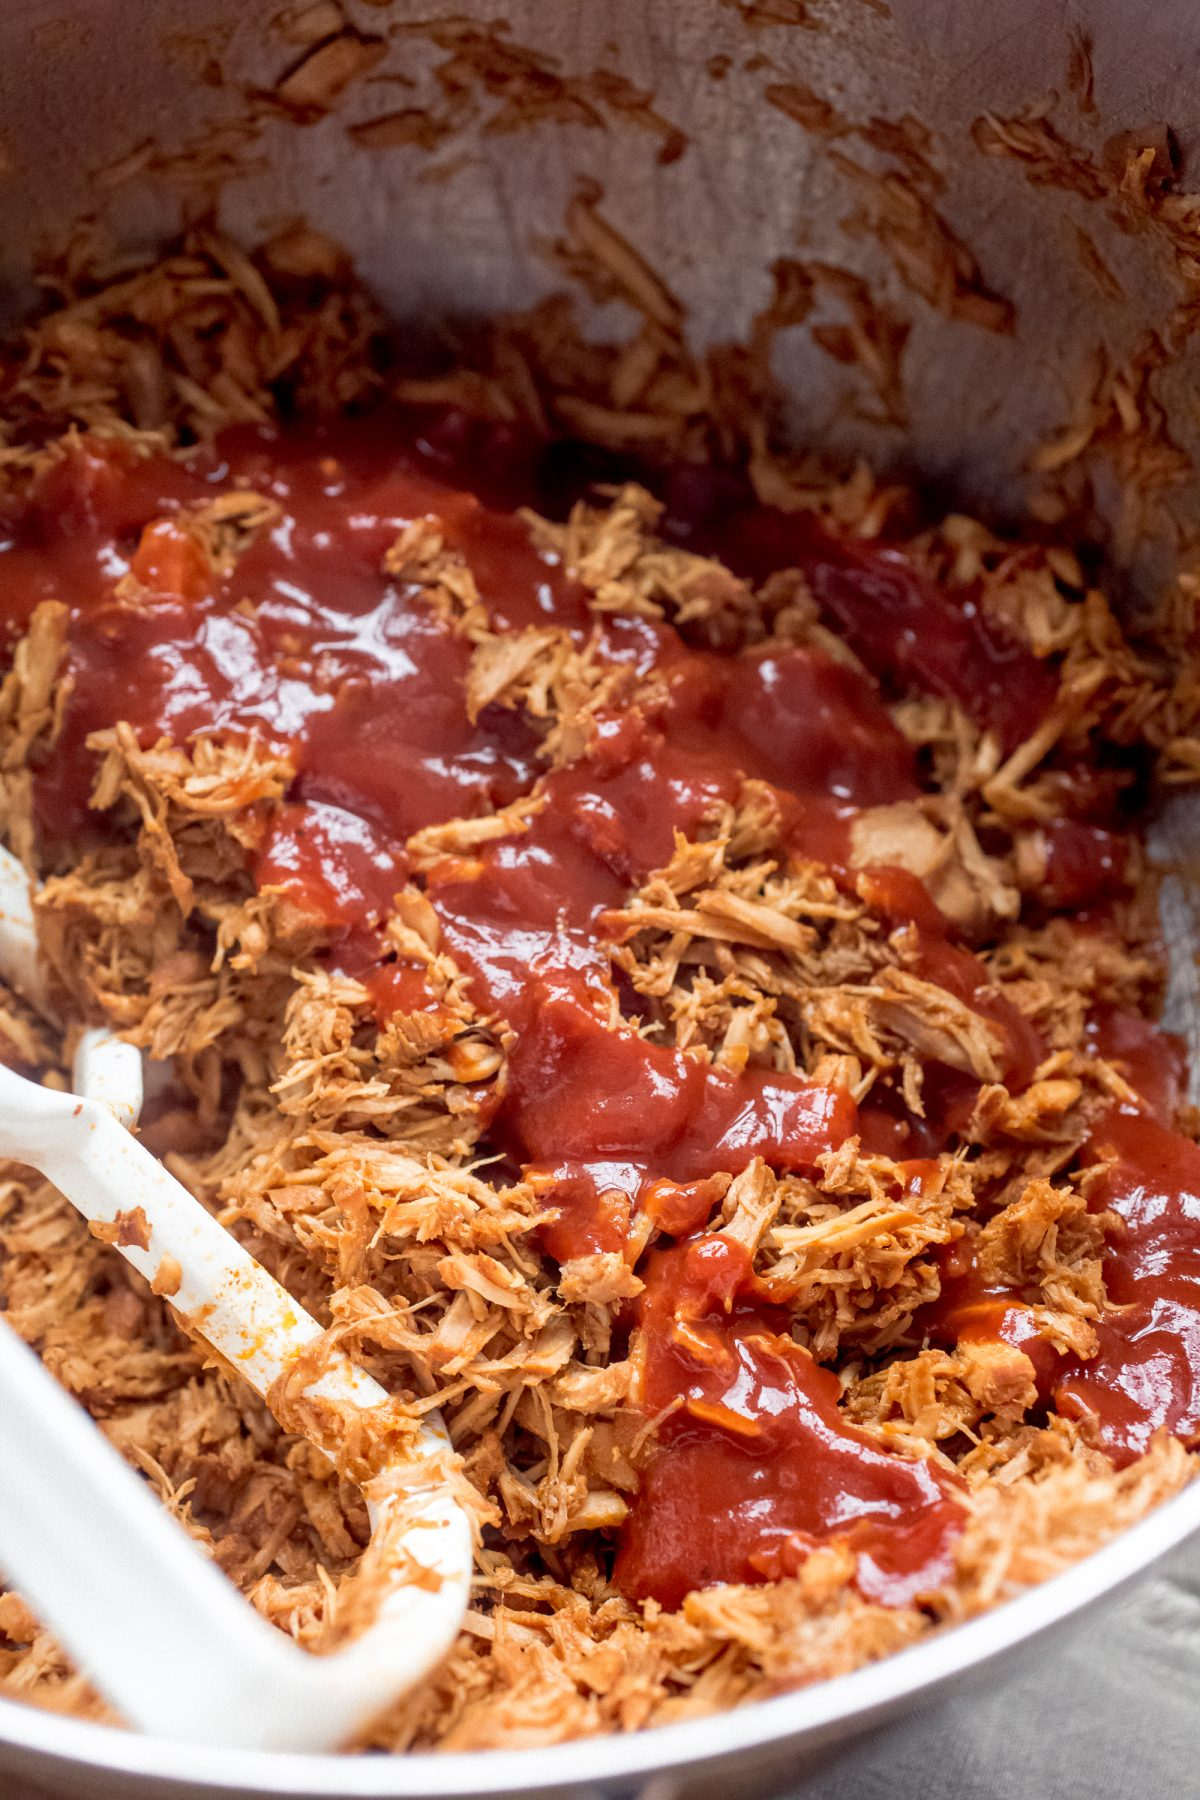 A mixing bowl filled with shredded pork shoulder covered in barbecue sauce